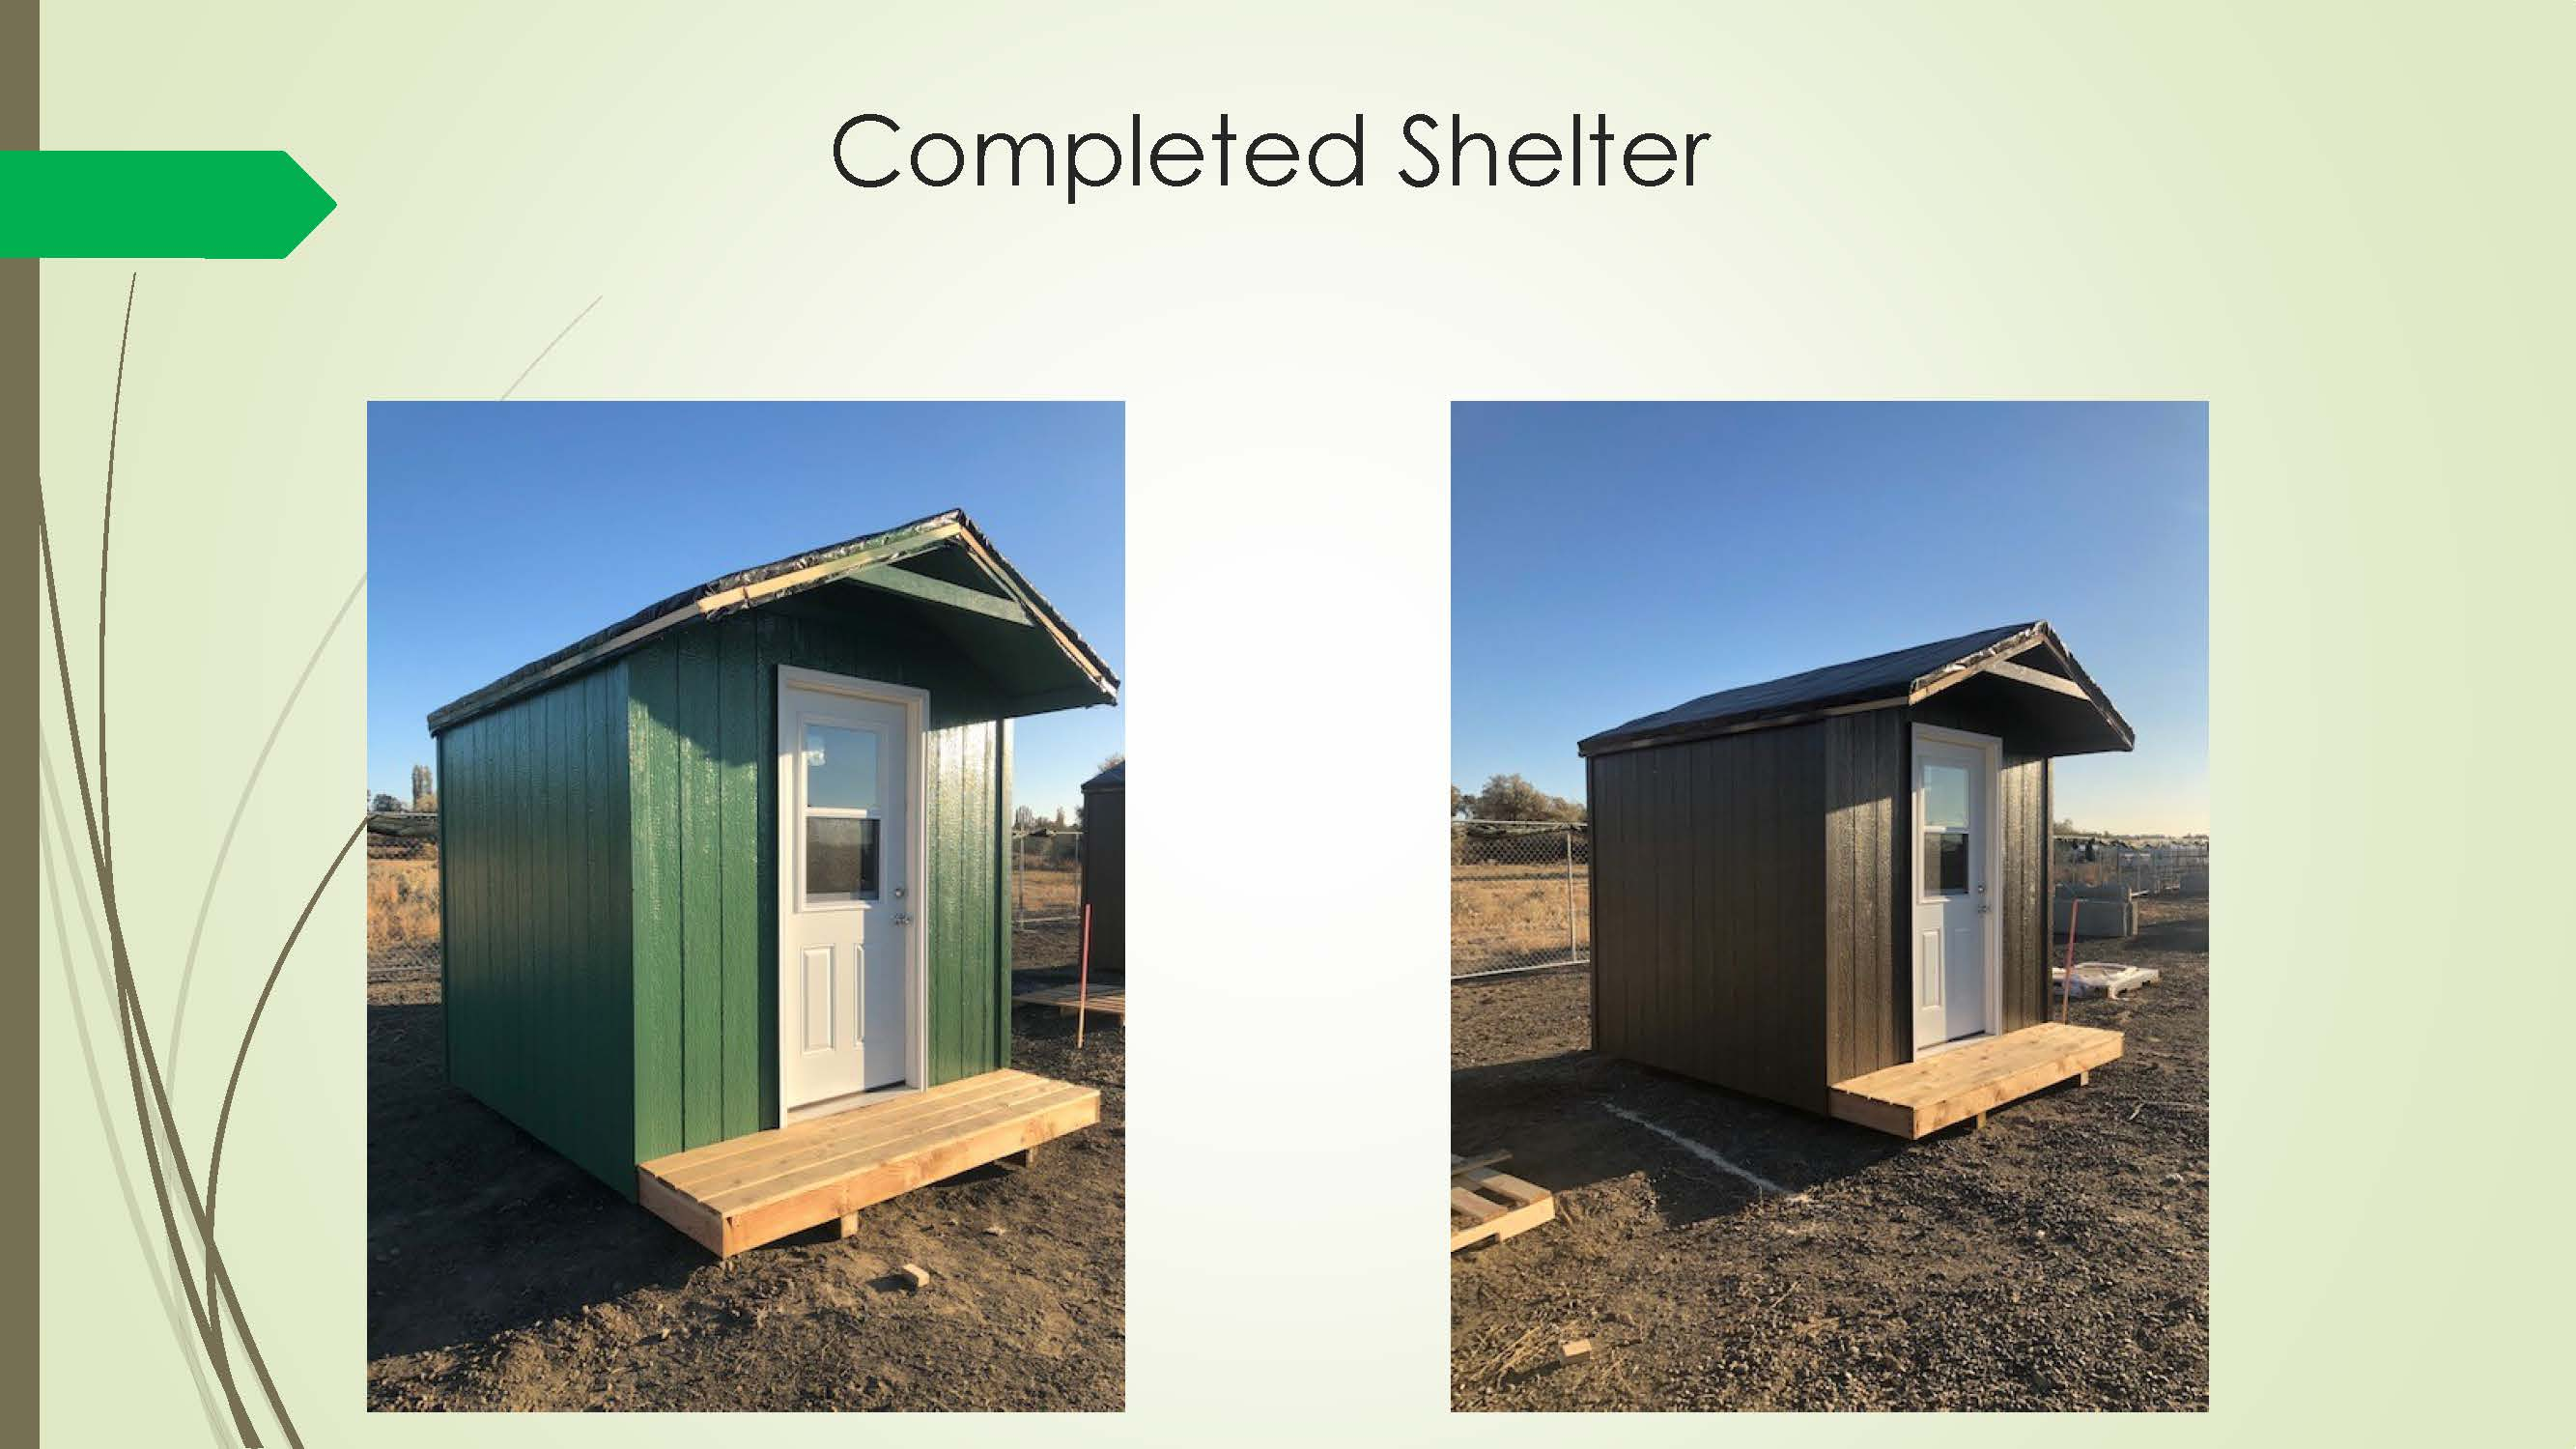 Completed City shelters for homeless